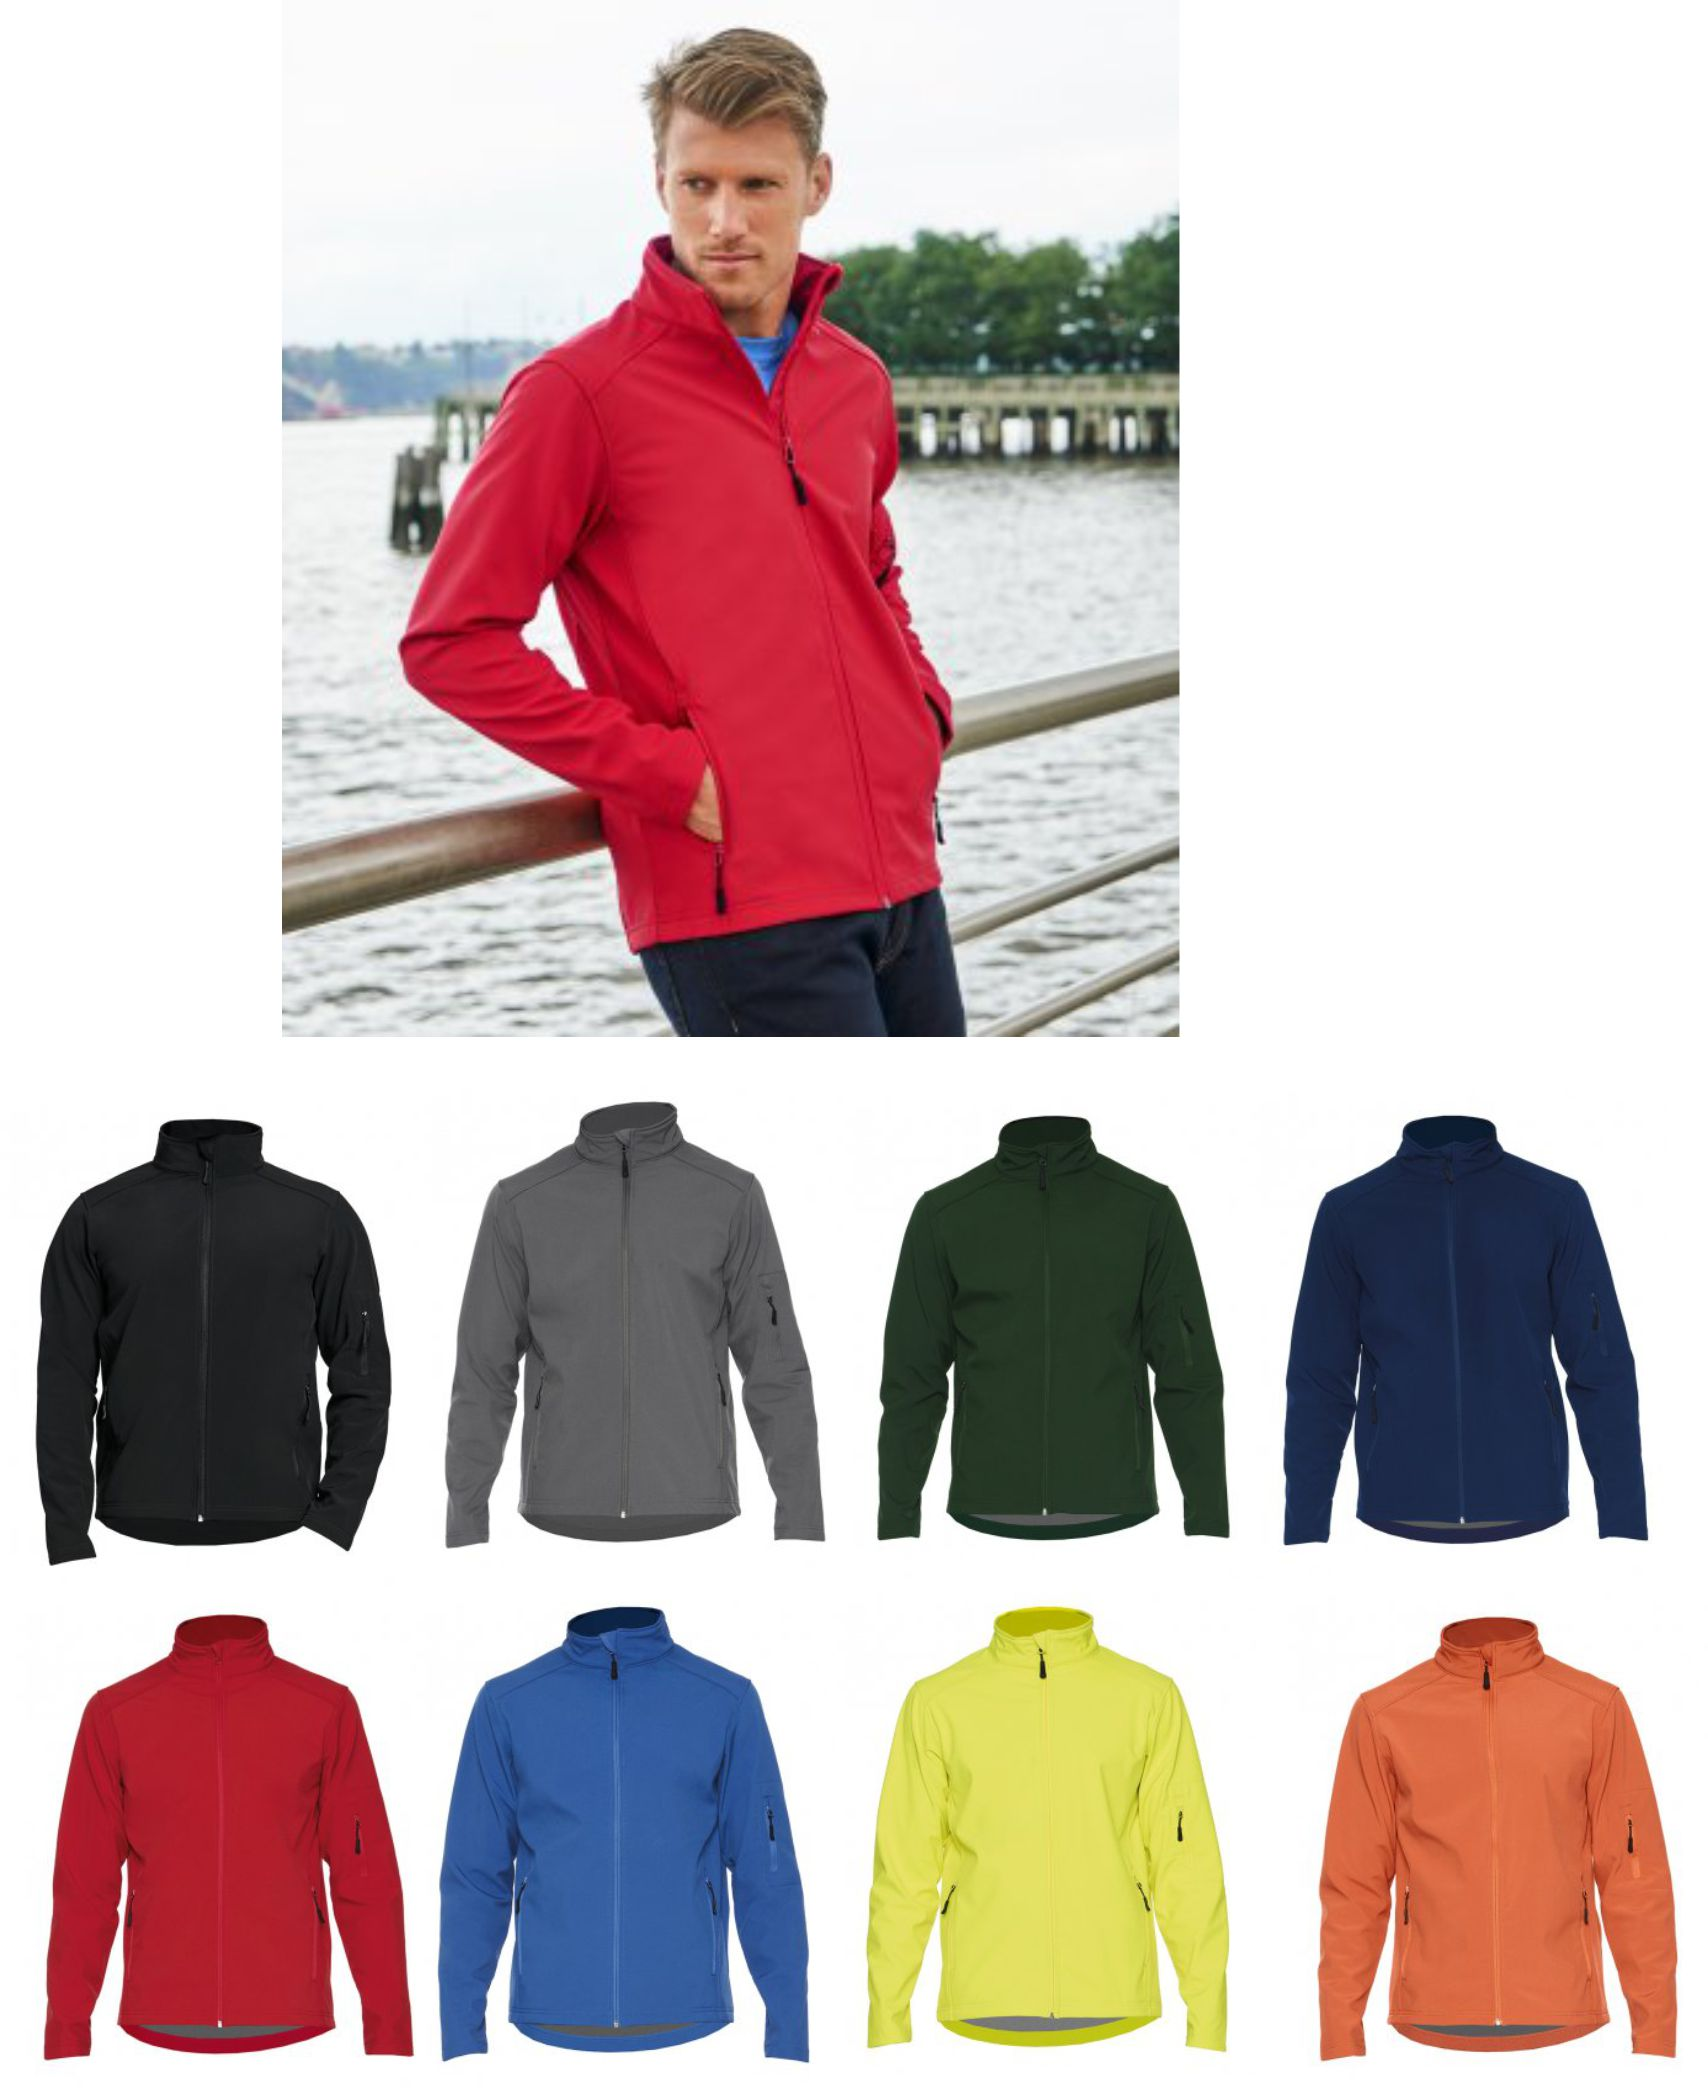 GH114 Gildan Hammer Soft Shell Jacket